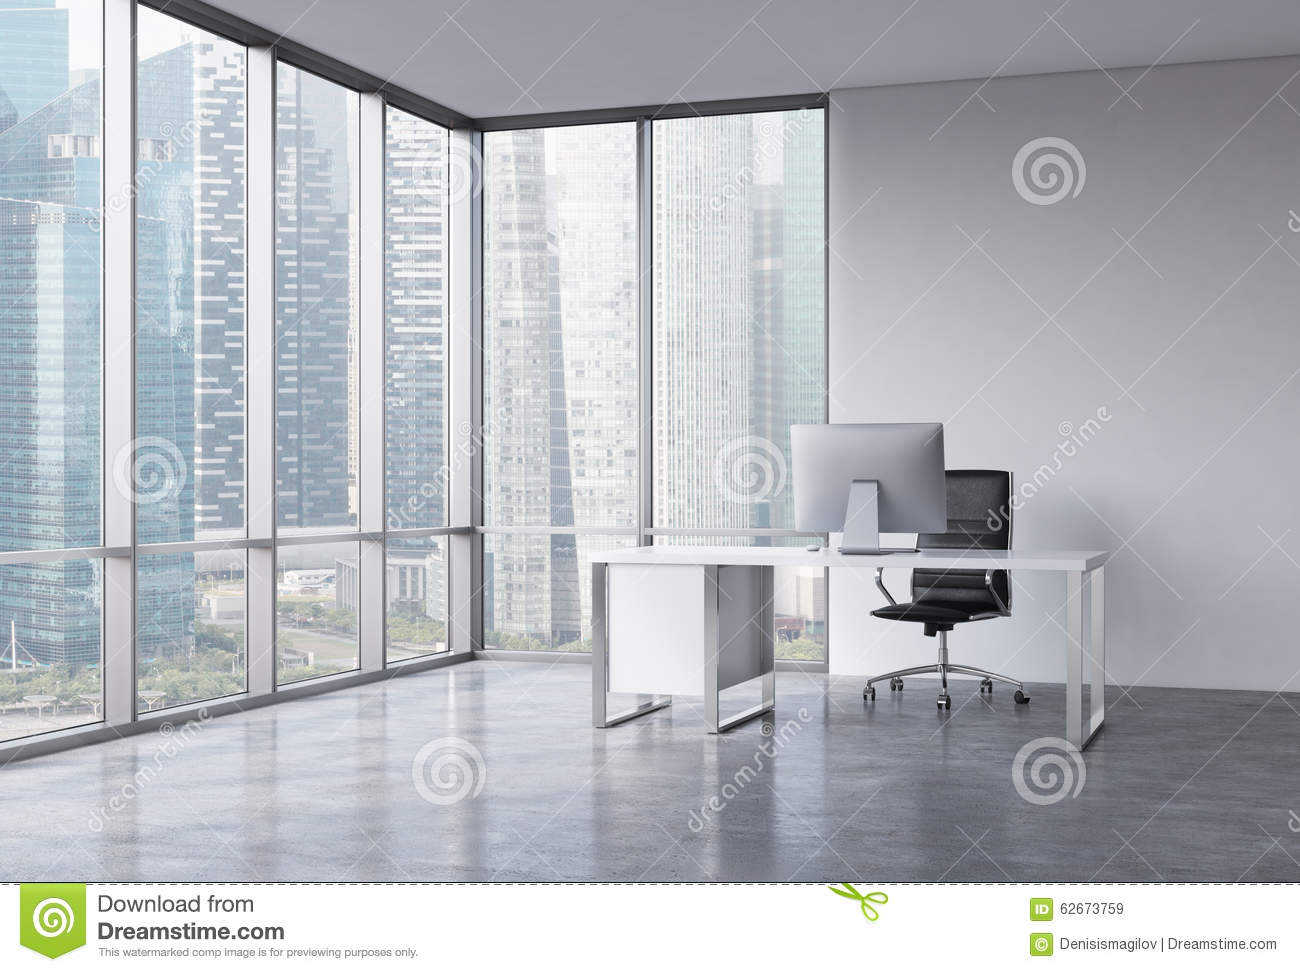 A Workplace In A Modern Corner Panoramic Office With Singapore View Stock Illustration Illustration Of Singapore Monitor 62673759